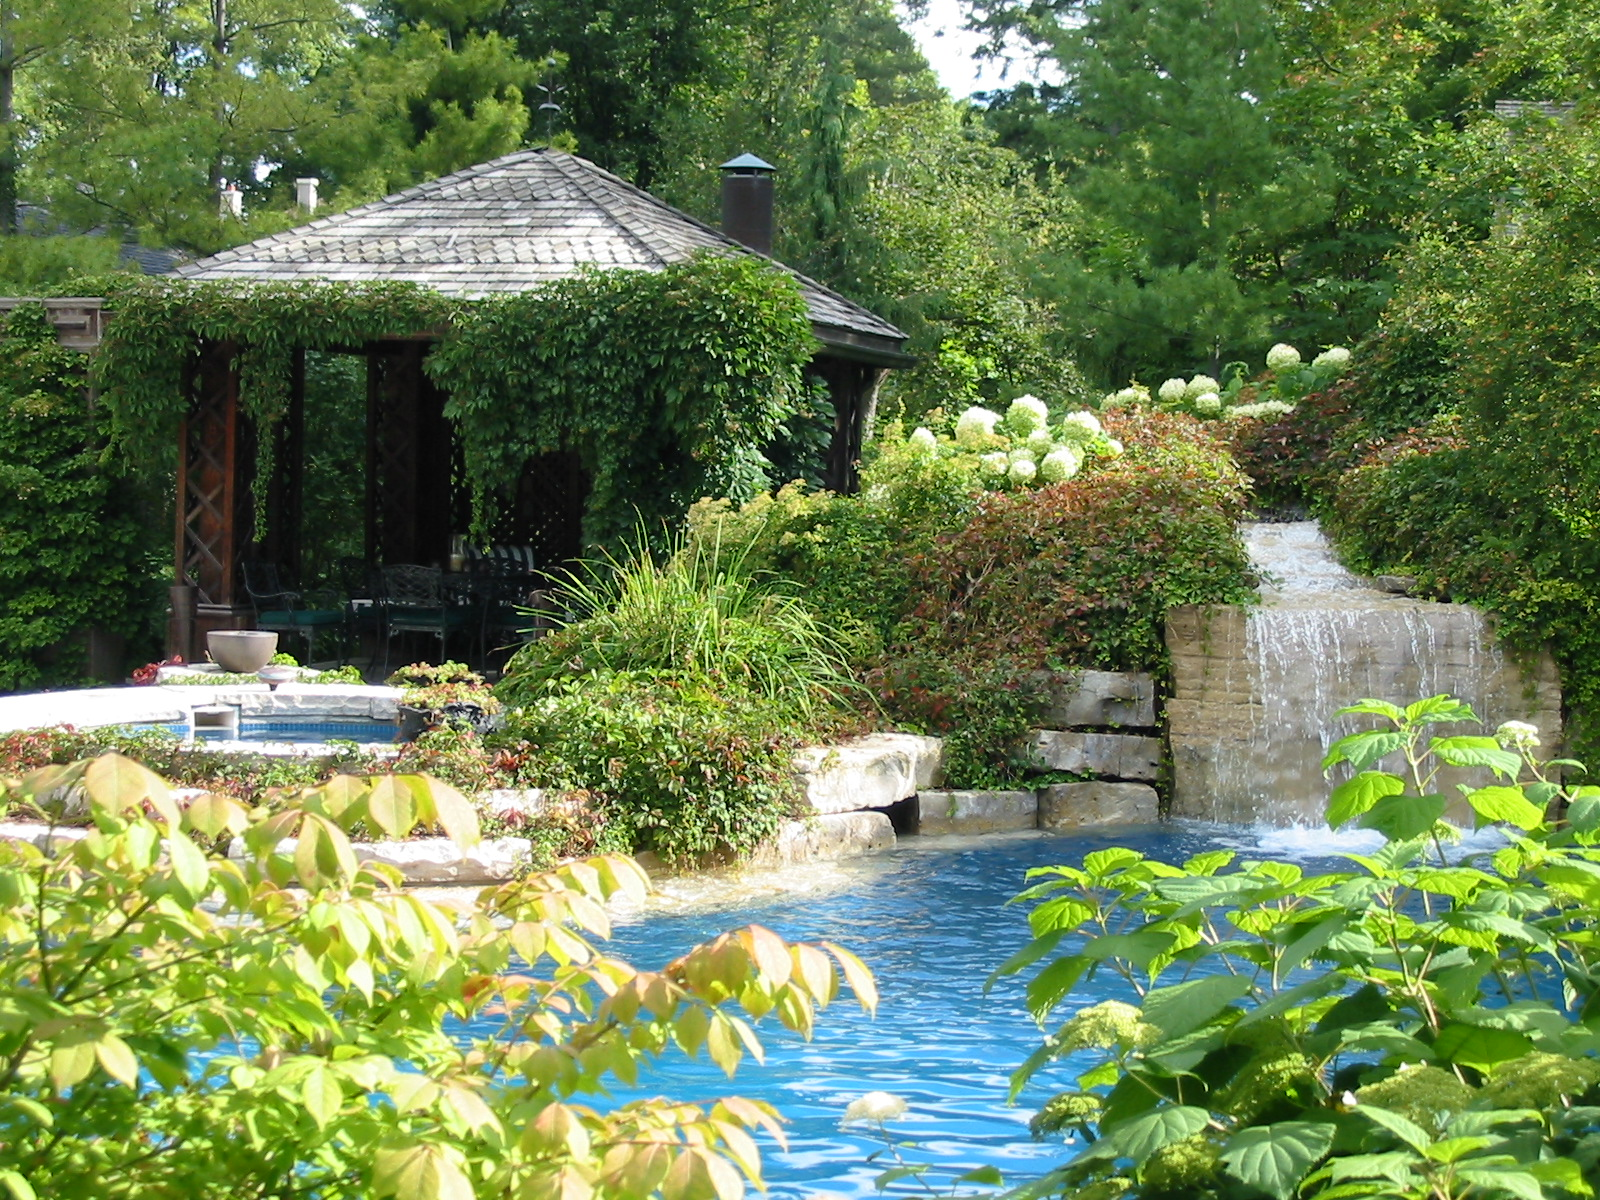 The backgarden pool house